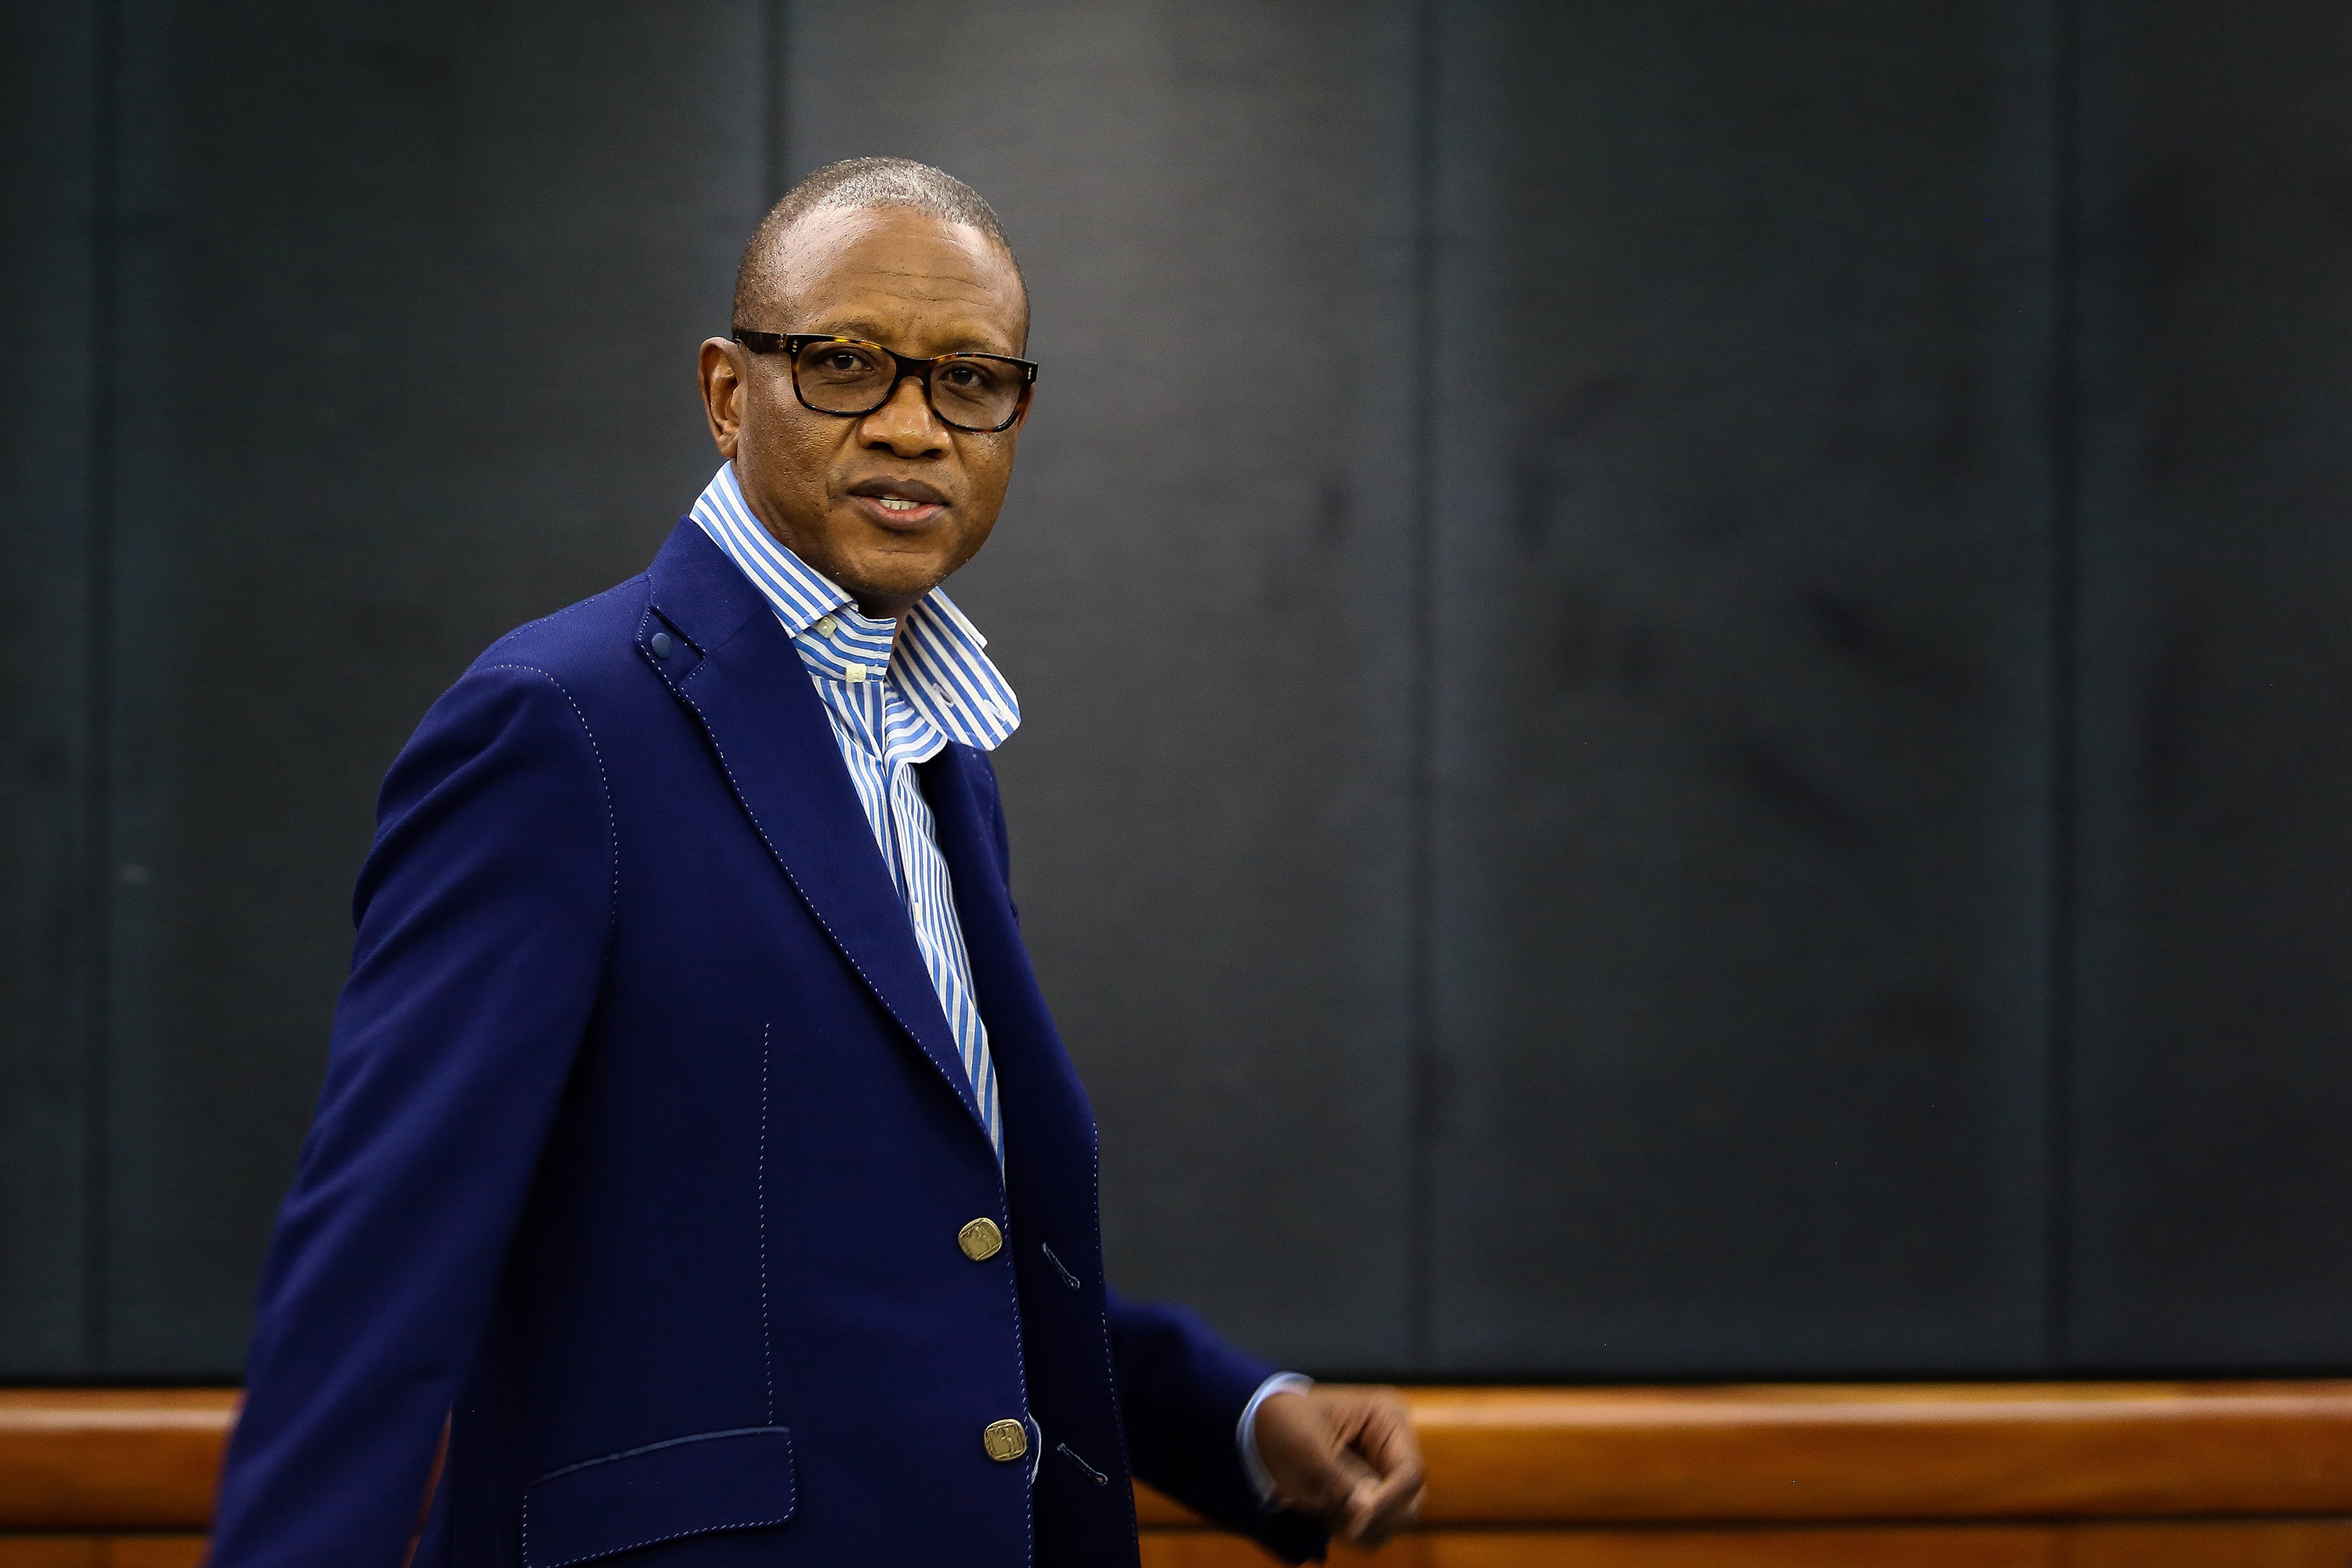 11 December 2014: Fana Hlongwane denied any involvement in or knowledge of corrupt activities relating to the controversial arms deal when he eventually testified at the Seriti commission. (Photograph by Gallo Images/The Times/Moeletsi Mabe)